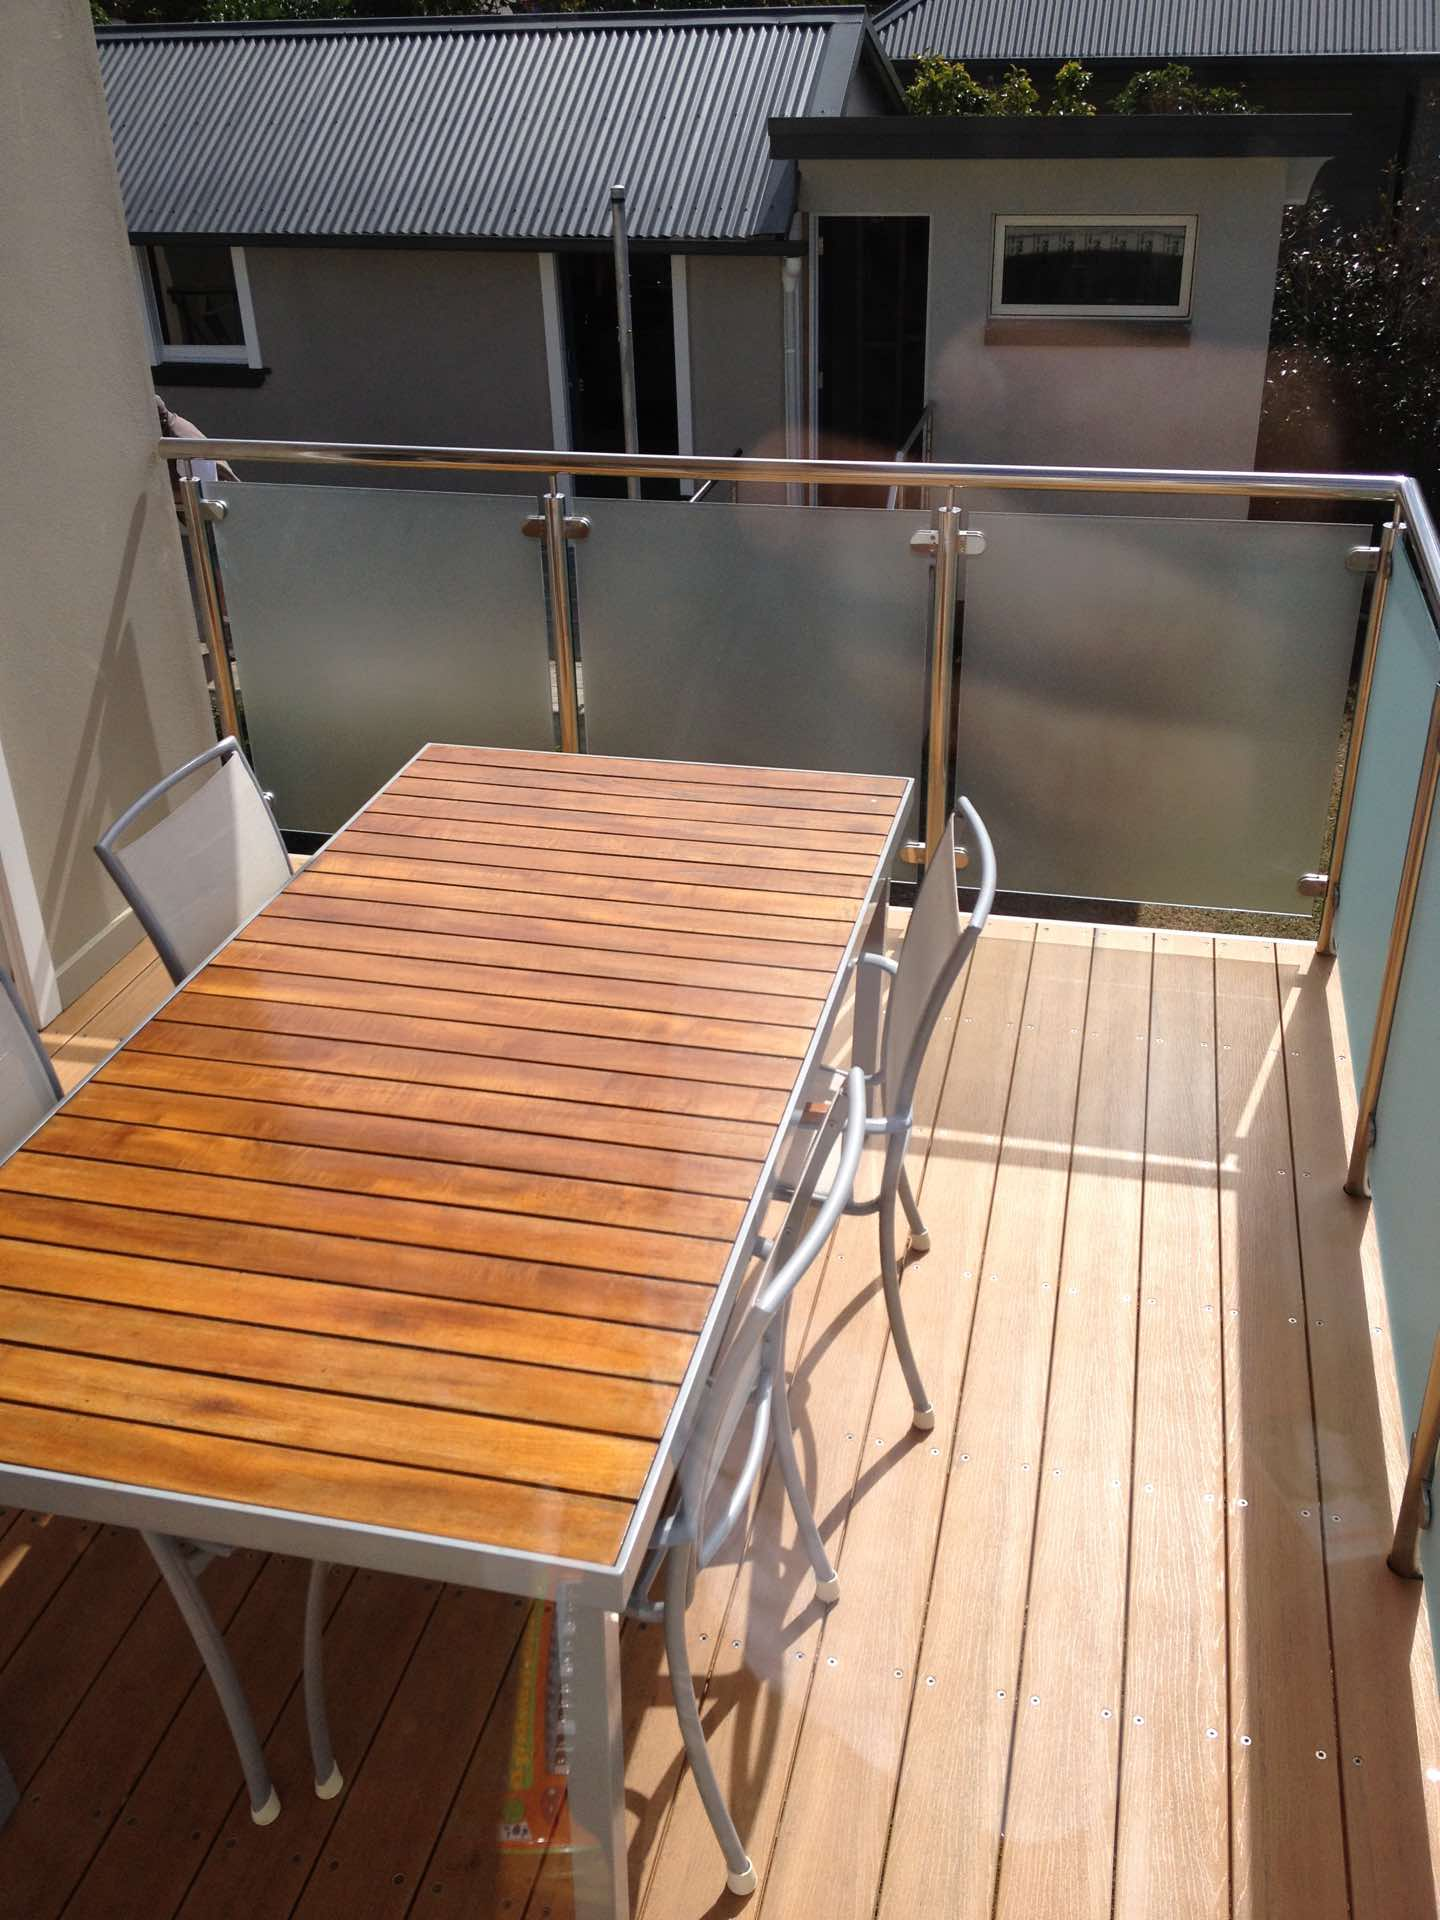 Rebuild and extension of existing deck and re use of handrail and balustrade.  Mod wood Allambie Heights, NSW